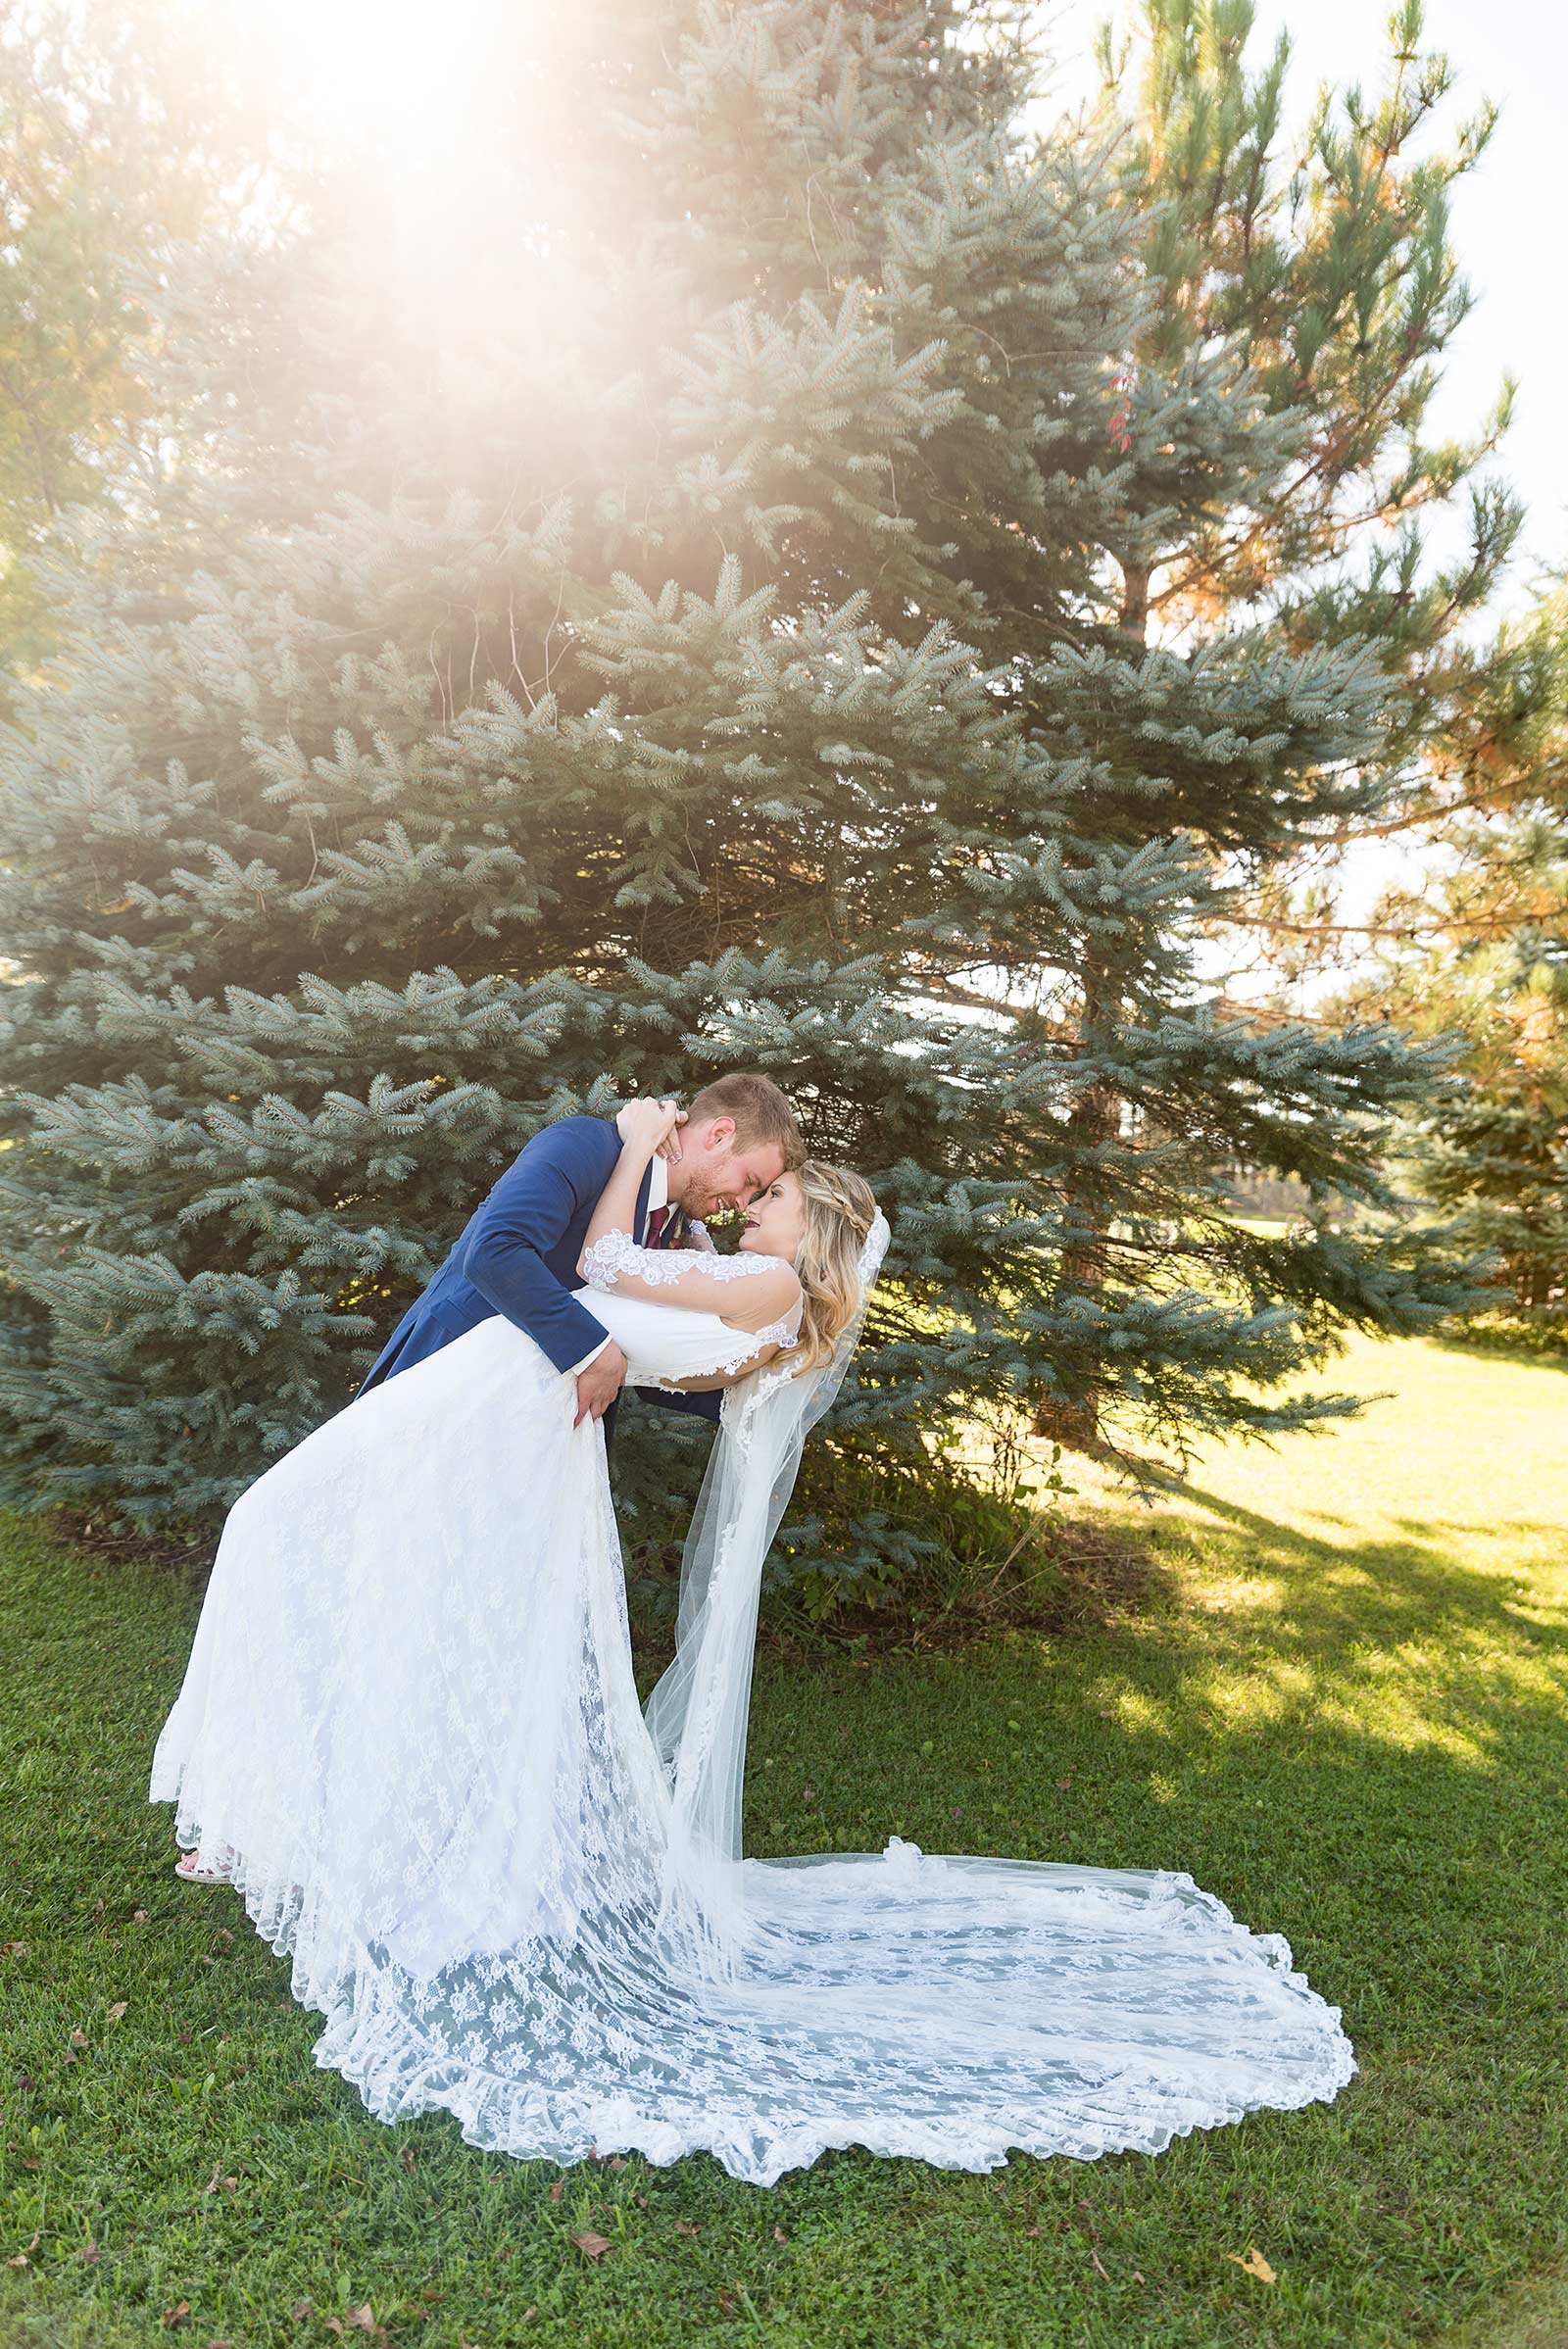 Copy of The Dip Wedding Pose Bride and Groom  |  Life & Art Photography  |  Destination Wedding Photographer